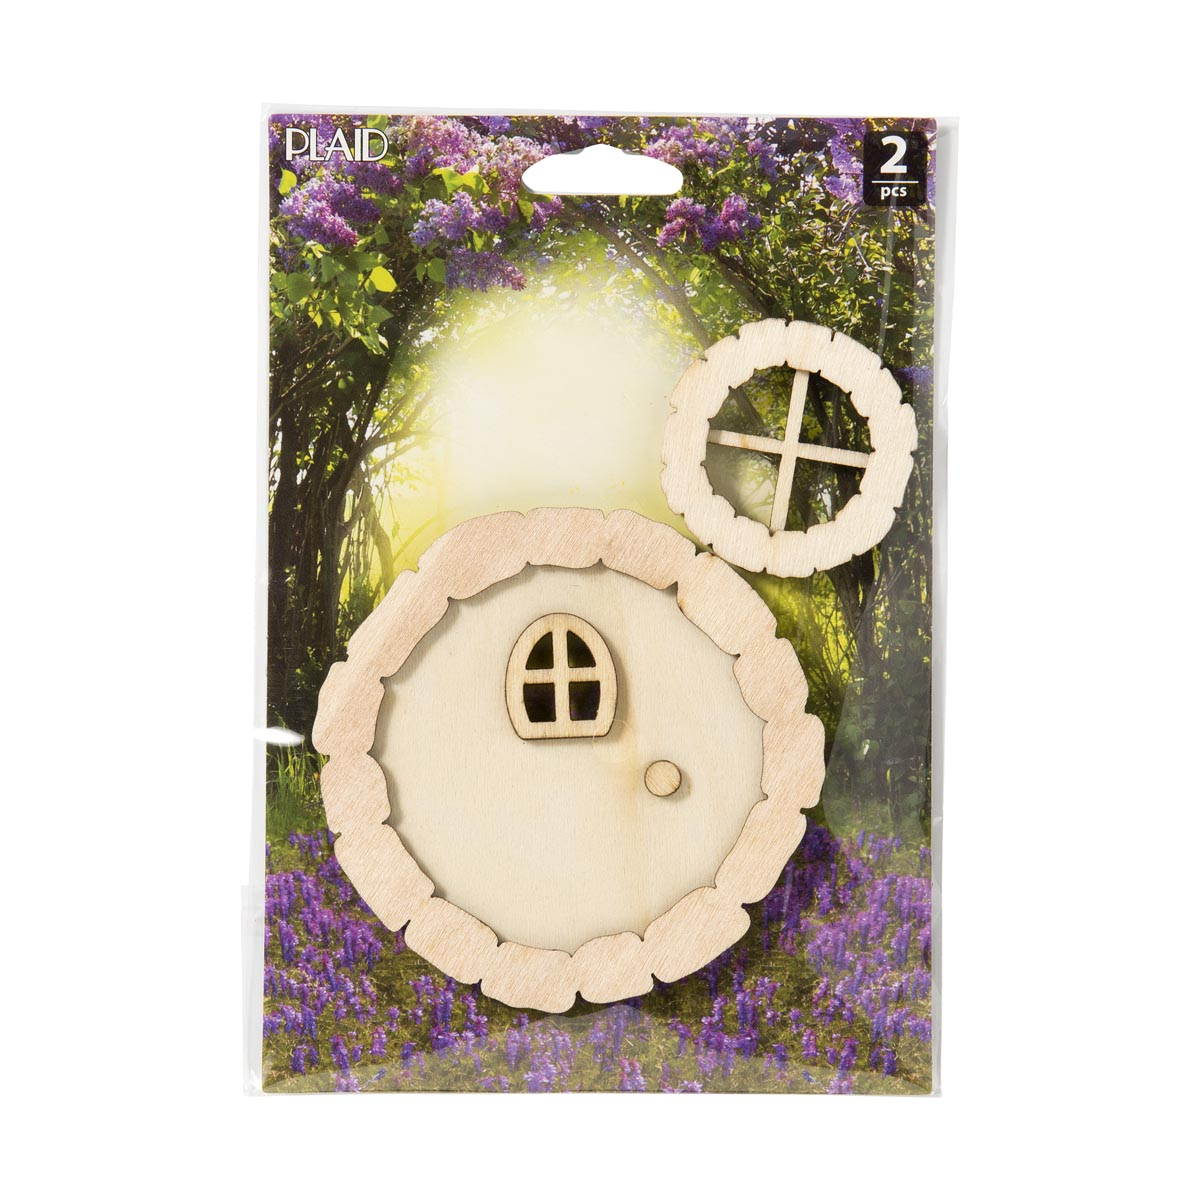 Plaid ® Wood Surfaces - Fairy Garden - Round Door and Window 2 pc.